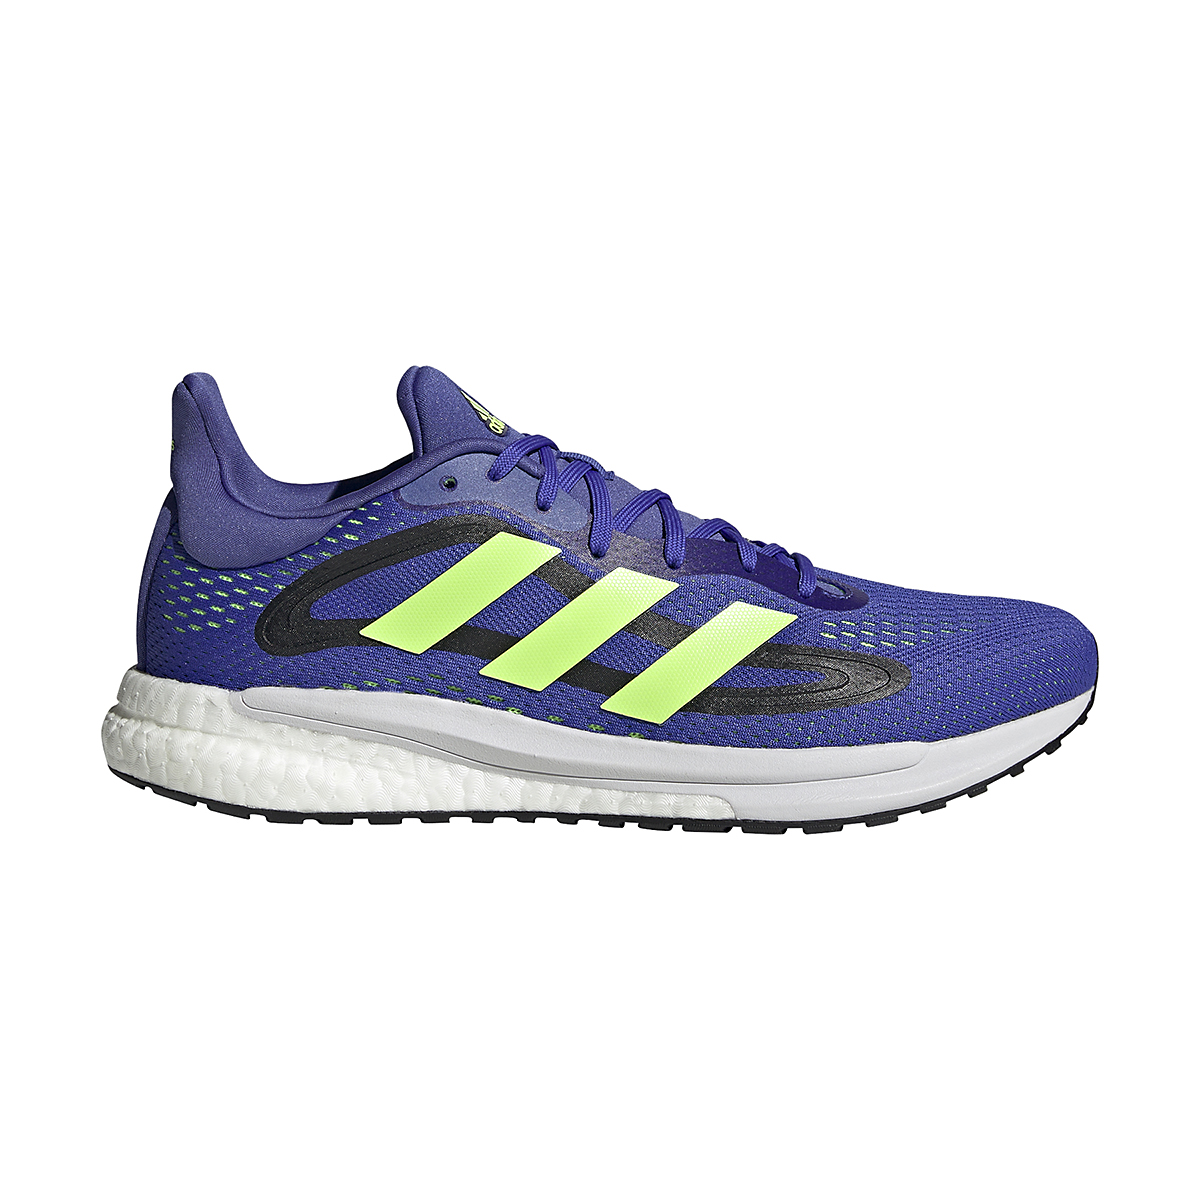 Men's Adidas SolarGlide 4 Running Shoe - Color: Sonic Ink/Signal Green/Core Black - Size: 6.5 - Width: Regular, Sonic Ink/Signal Green/Core Black, large, image 1